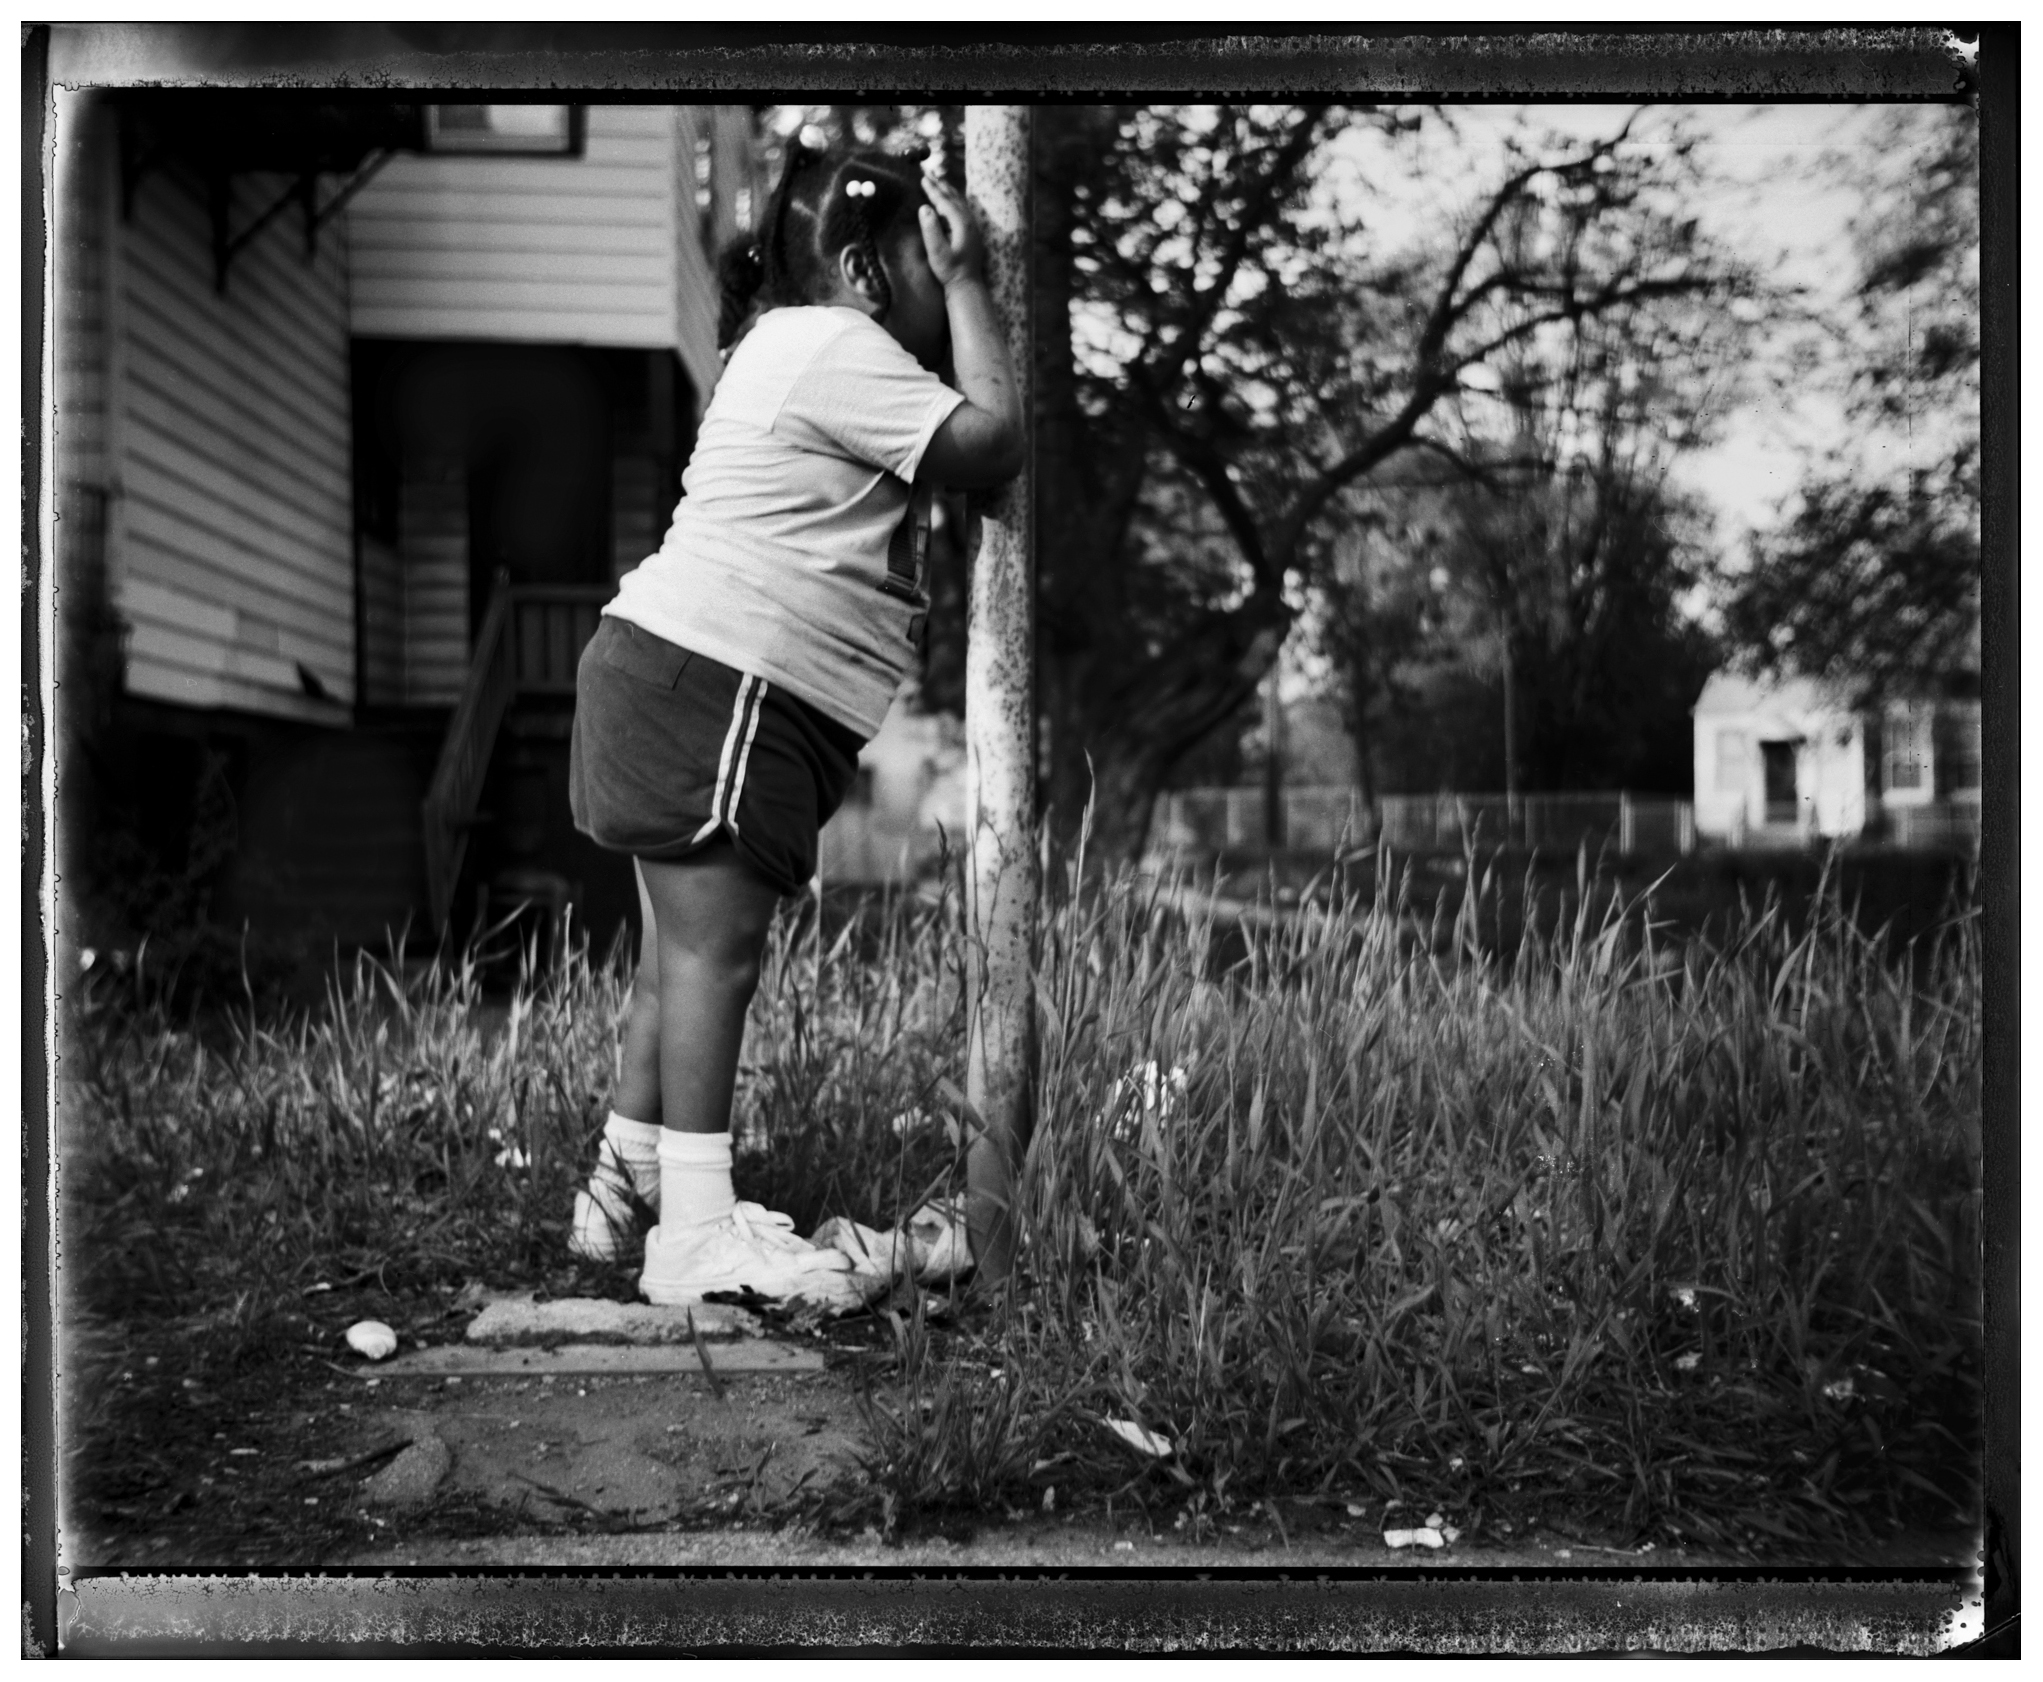 """Mariah Driver plays Hide and Seek with her sisters outside her house on S. Chicago St. in Chicago's Pocket Town neighborhood. The family has since moved to the Englewood neighborhoodand the house, which was in decrepit condition, has been demolished to make way for new development by the Comer Foundation. This is a story about place. Pockettown, or """"the Pocket,"""" is a tight-knit African-American neighborhood in the Greater Grand Crossing neighborhood on Chicago's South Side. In 2001, Gary Comer, founder of Lands' End and a Pockettown native, asked me to teach photography at Paul Revere Elementary School and to document life in the neighborhood.  A Revere alumnus, Comer was providing substantial resources through his foundation to his alma mater and childhood community, which had shifted from a white ethnic area to a predominately black neighborhood. I agreed.  In January 2002 I began working at Revere and in the community.  For the first 18 months I photographed primarily within the school.  But I felt that my role needed to be more than a photographer, so I also coached basketball and worked on a community newspaper.  As I became more known, I started to concentrate on life outside the school.  Since 2000 the South Side has seen major changes, including the destruction of many Chicago Housing Authority projects and the continued gentrification of many communities bordering Lake Michigan.  As part of documenting life in the Pocket, these photographs attempt to illustrate larger trends of renewal, change and transformation on the city's South Side. The project also includes audio interviews with neighborhood residents that record their feelings about the changes occurring in their neighborhood. My hope is to stimulate dialogue about inequitable access to education, jobs and housing-in short, about opportunity and the meaning of community. I have few answers to these questions, but I'm not done looking.   Before the mid-1950's it was a pr"""